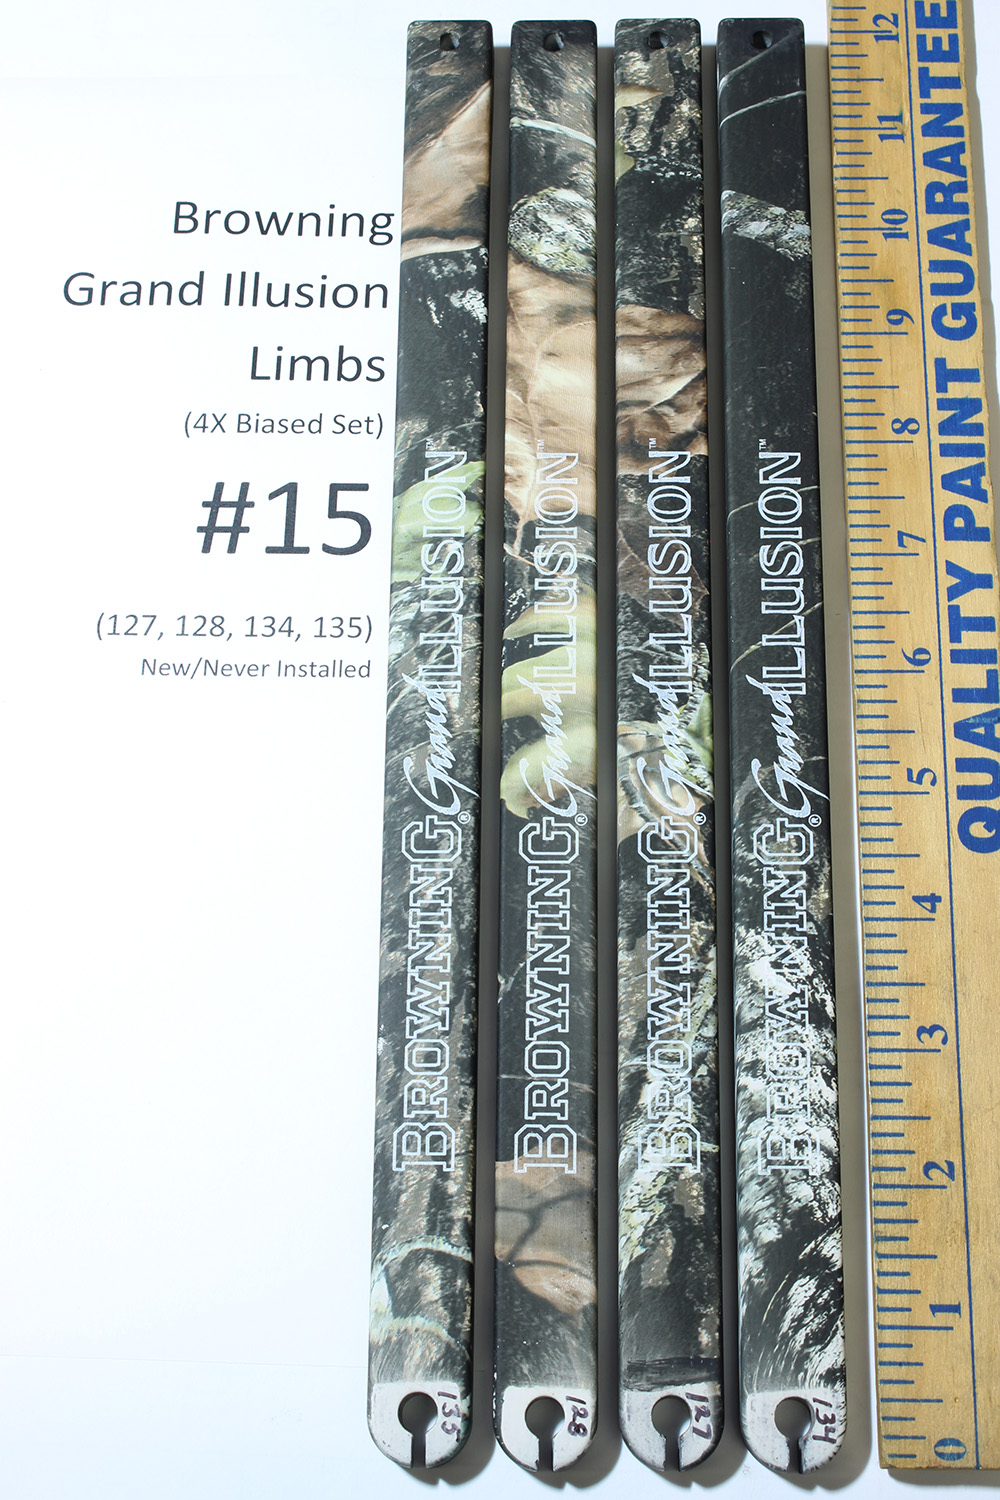 Factory Replacement #15 Limbs for Browning Grand Illusion Compound Bow, Biased Deflection 127/128/134/135 Set (4x) photo 1